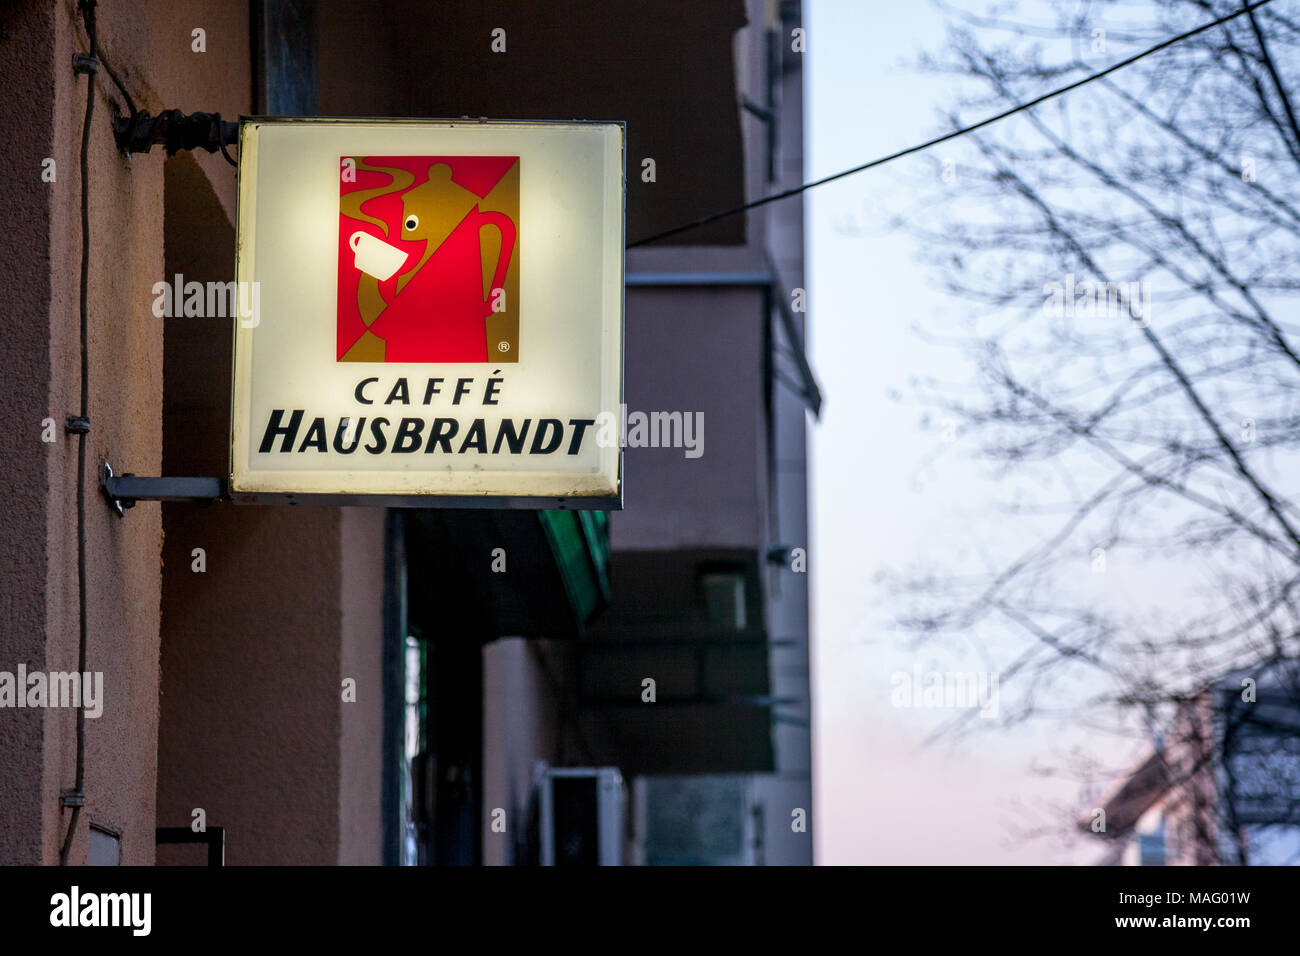 BELGRADE, SERBIA - MARCH 25, 2018: Caffe Hausbrandt logo lit on a cafe bar of Belgrade, during the evening. Caffe Hausbrandt is one of the biggest cof - Stock Image